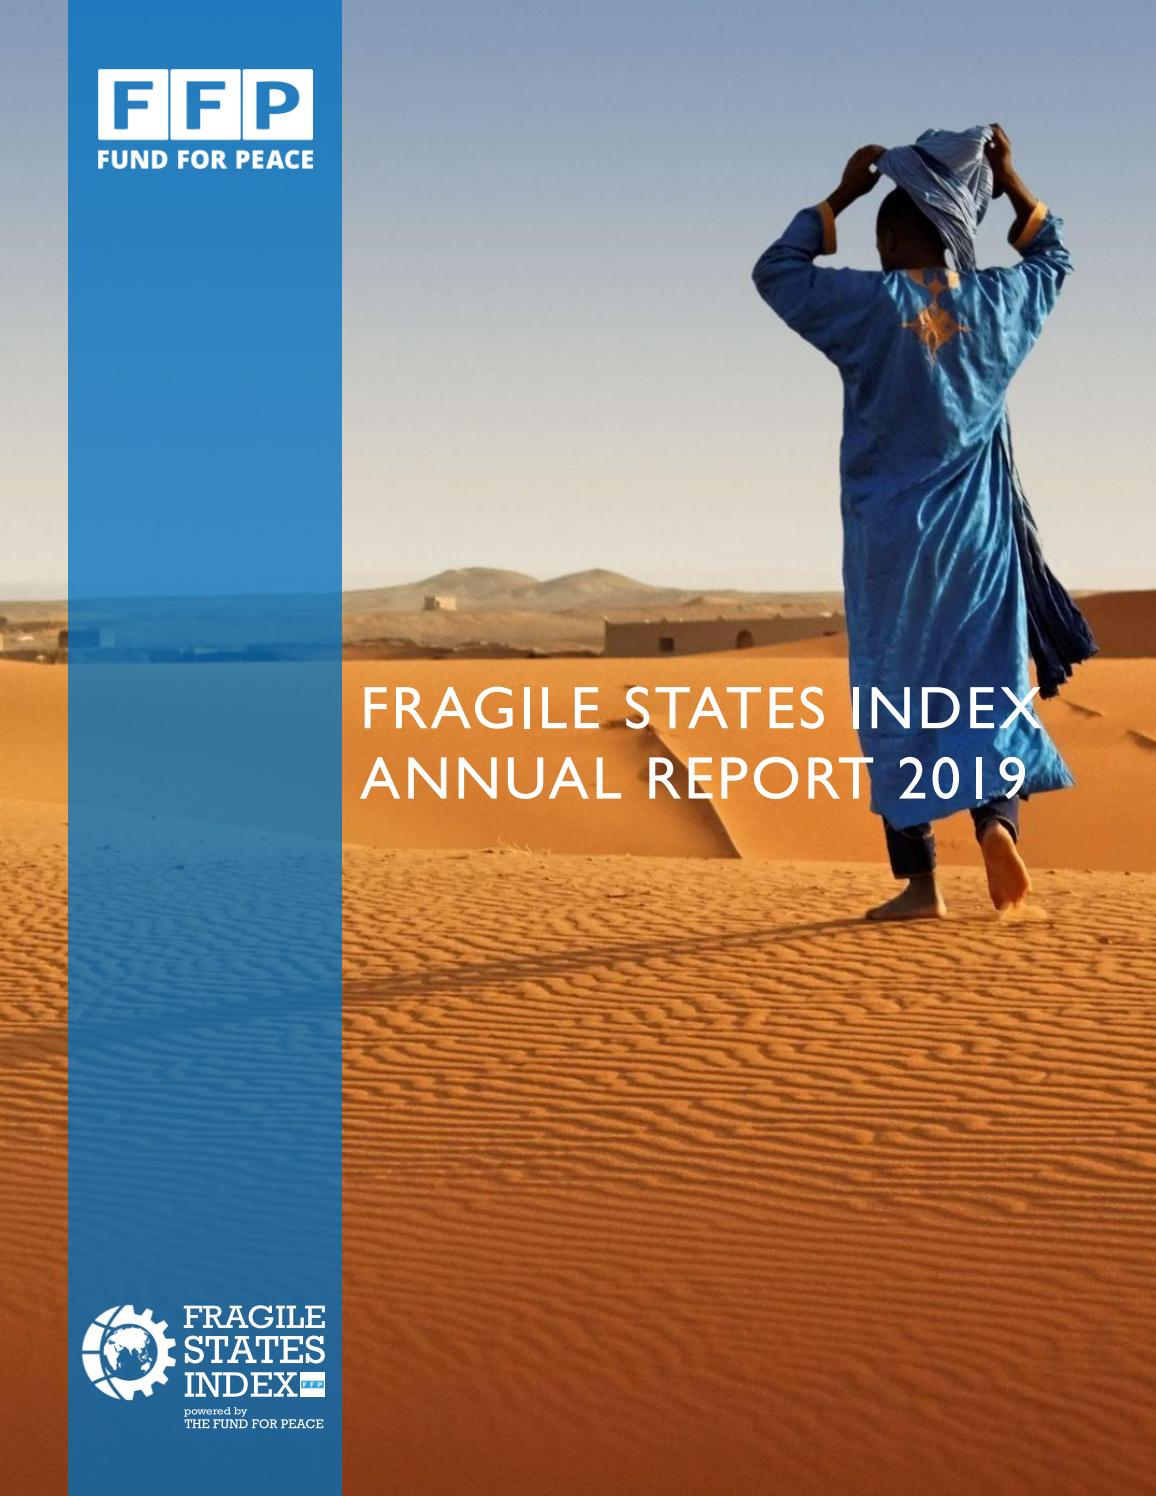 Fragile States Index 2019 by The Fund for Peace - issuu